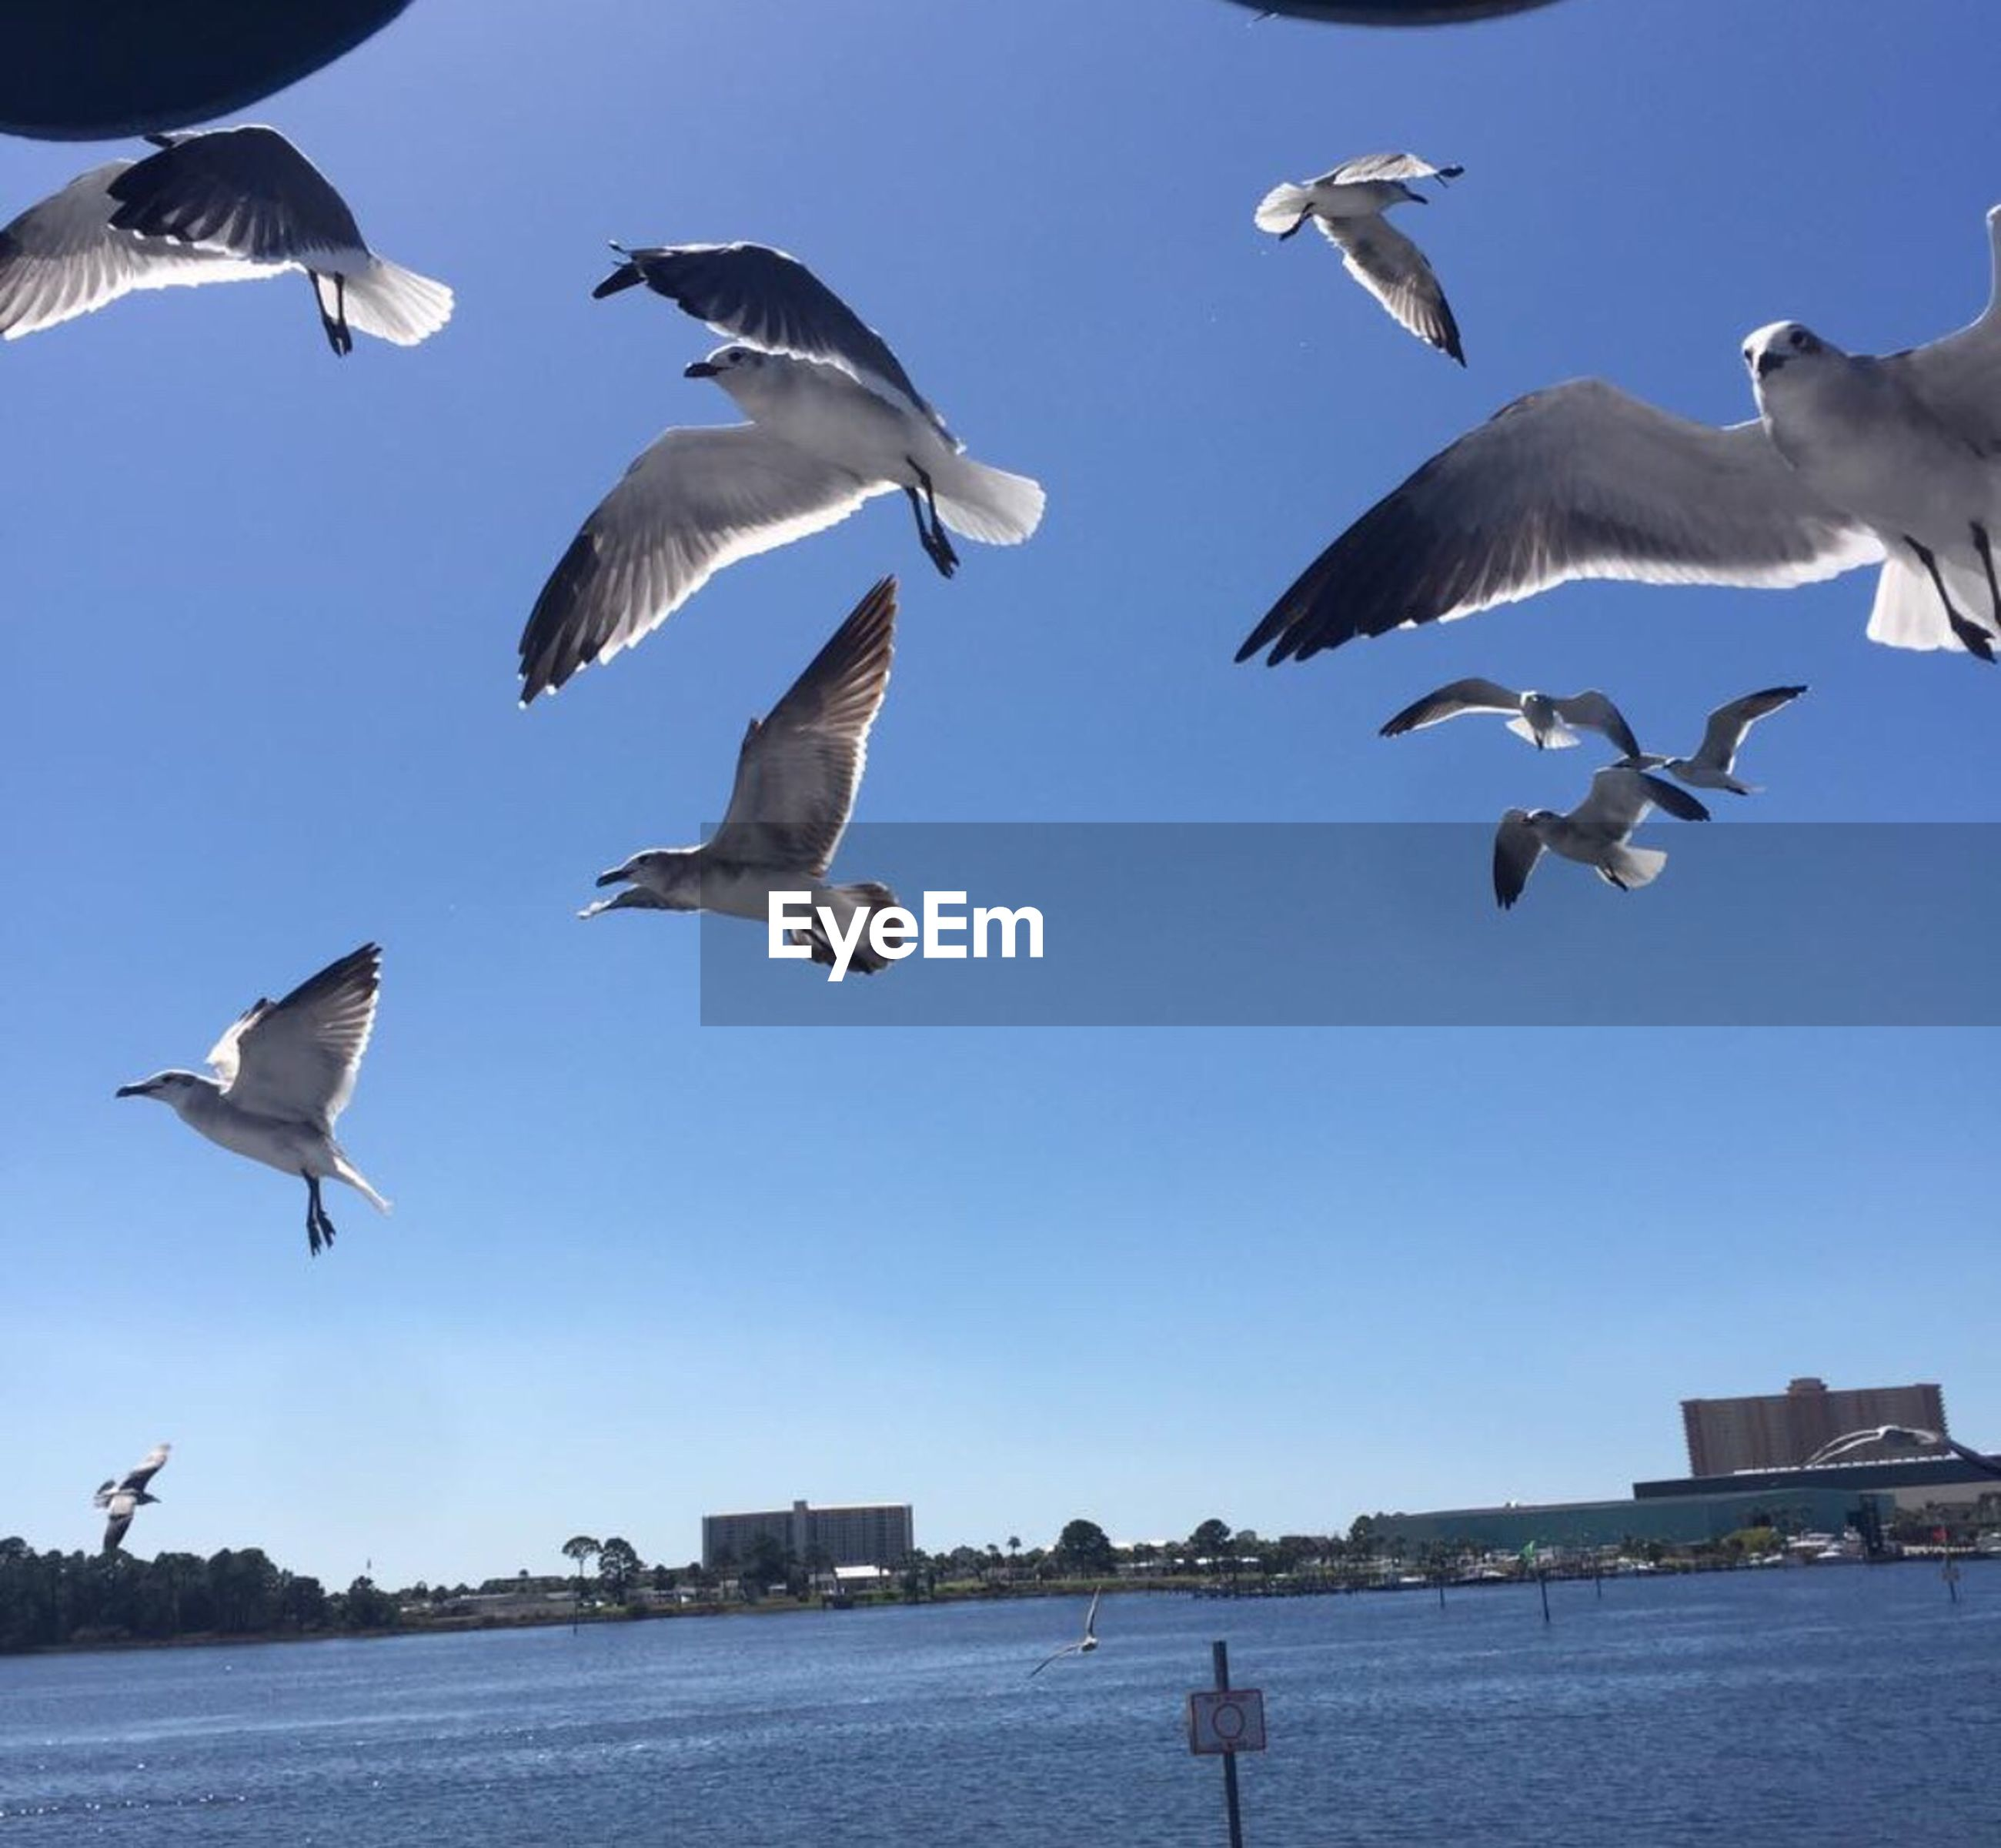 flying, bird, animals in the wild, animal wildlife, mid-air, animal body part, animal themes, low angle view, large group of animals, full length, outdoors, flock of birds, travel destinations, sky, city, sea, representing, spread wings, no people, beach, day, togetherness, sea life